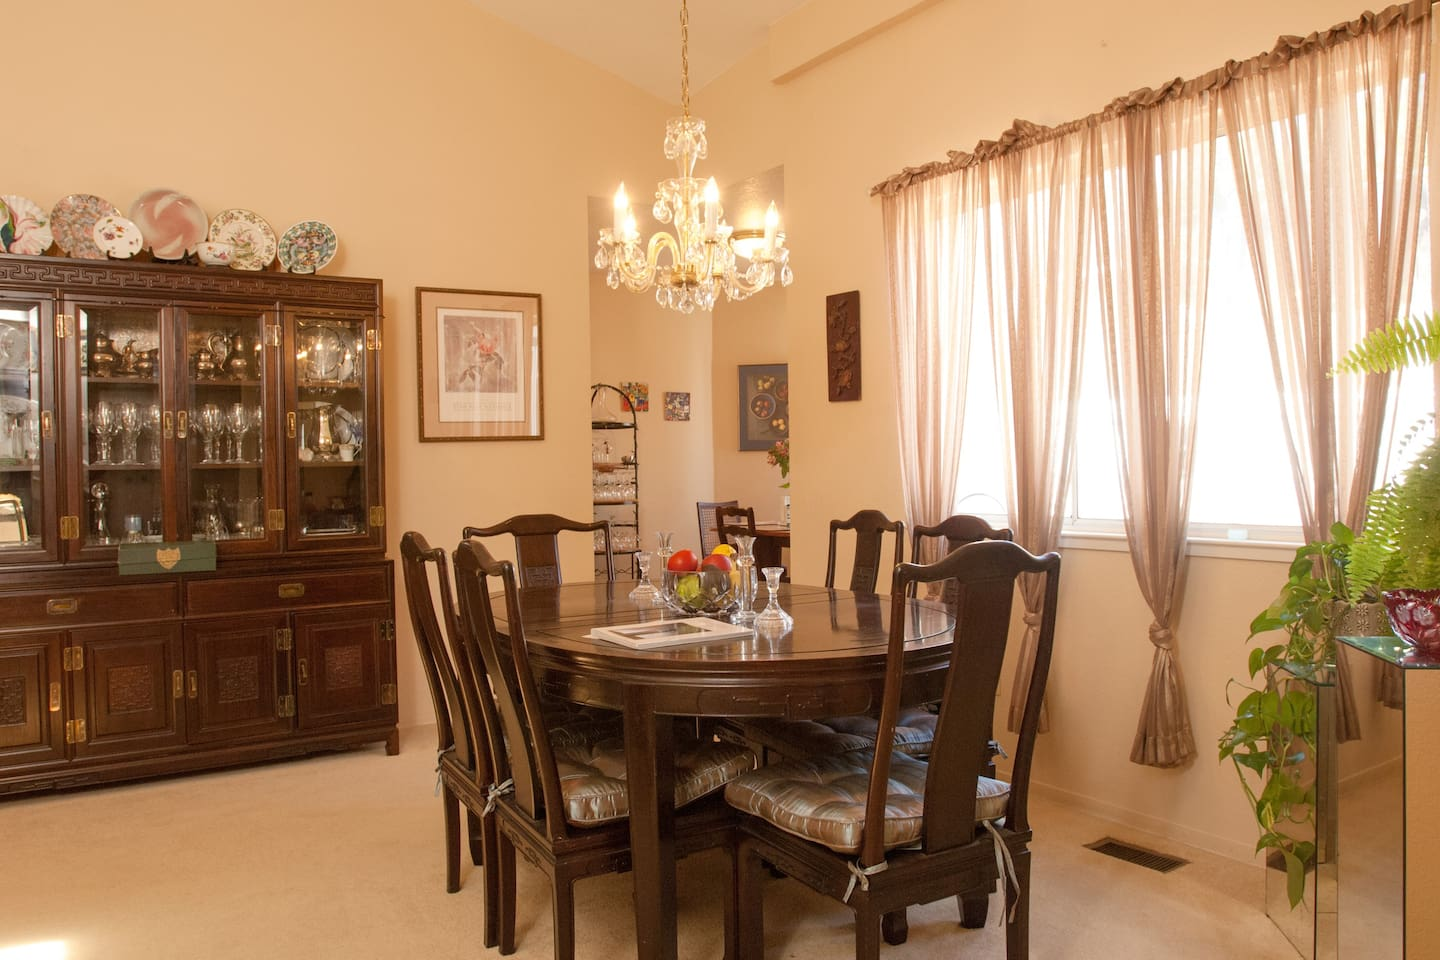 My dad designed the China cabinet and had the table and chairs custom made to match...